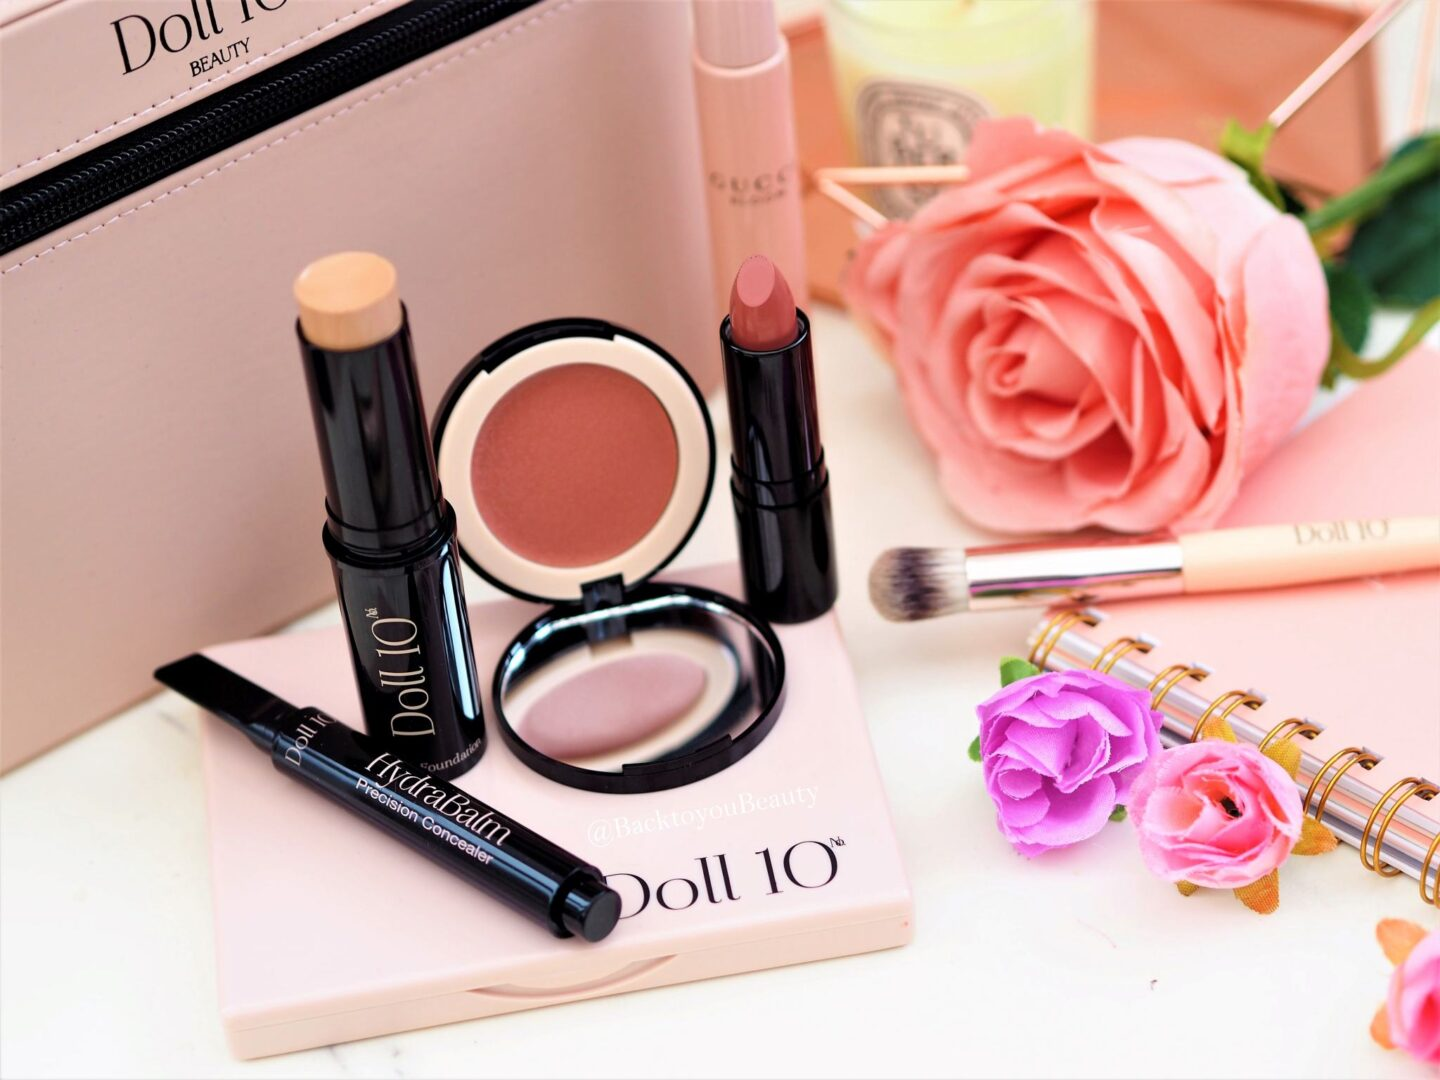 Doll 10 HydraBalm Complexion Collection